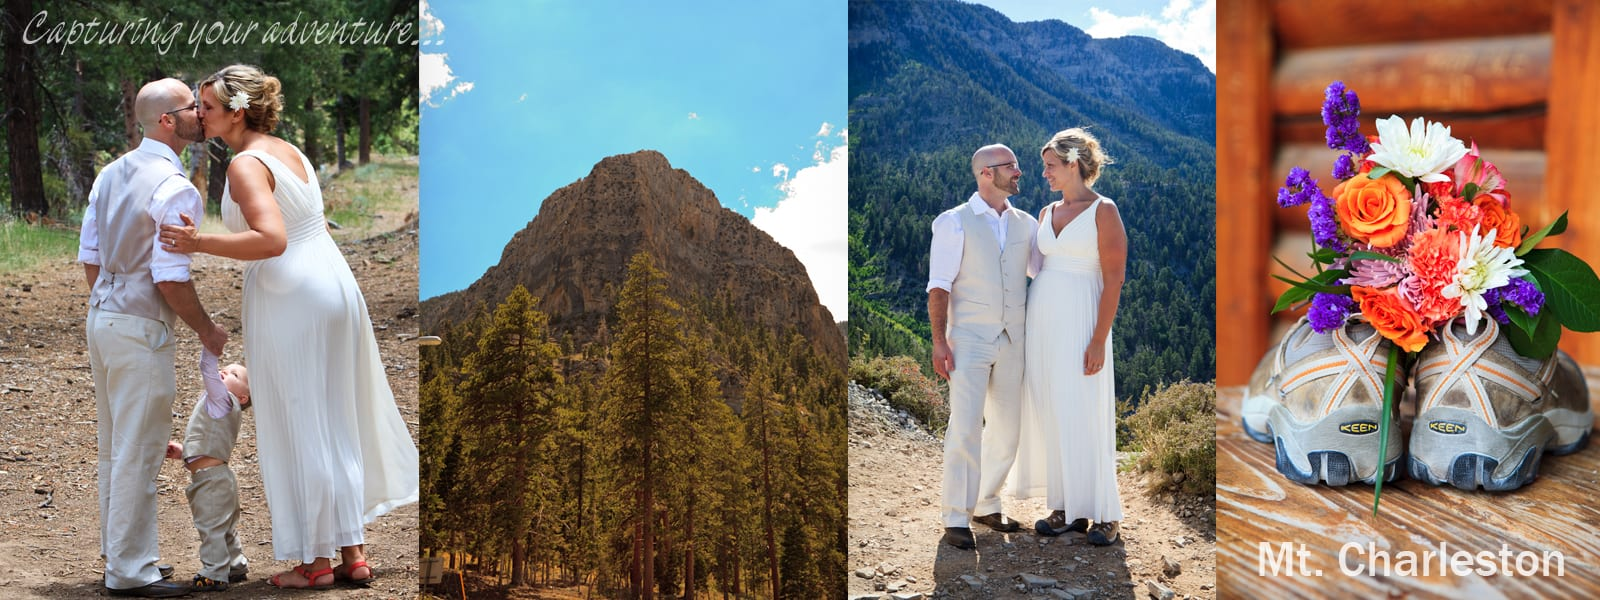 Mt. Charleston Wedding | Las Vegas Elopement Photographer